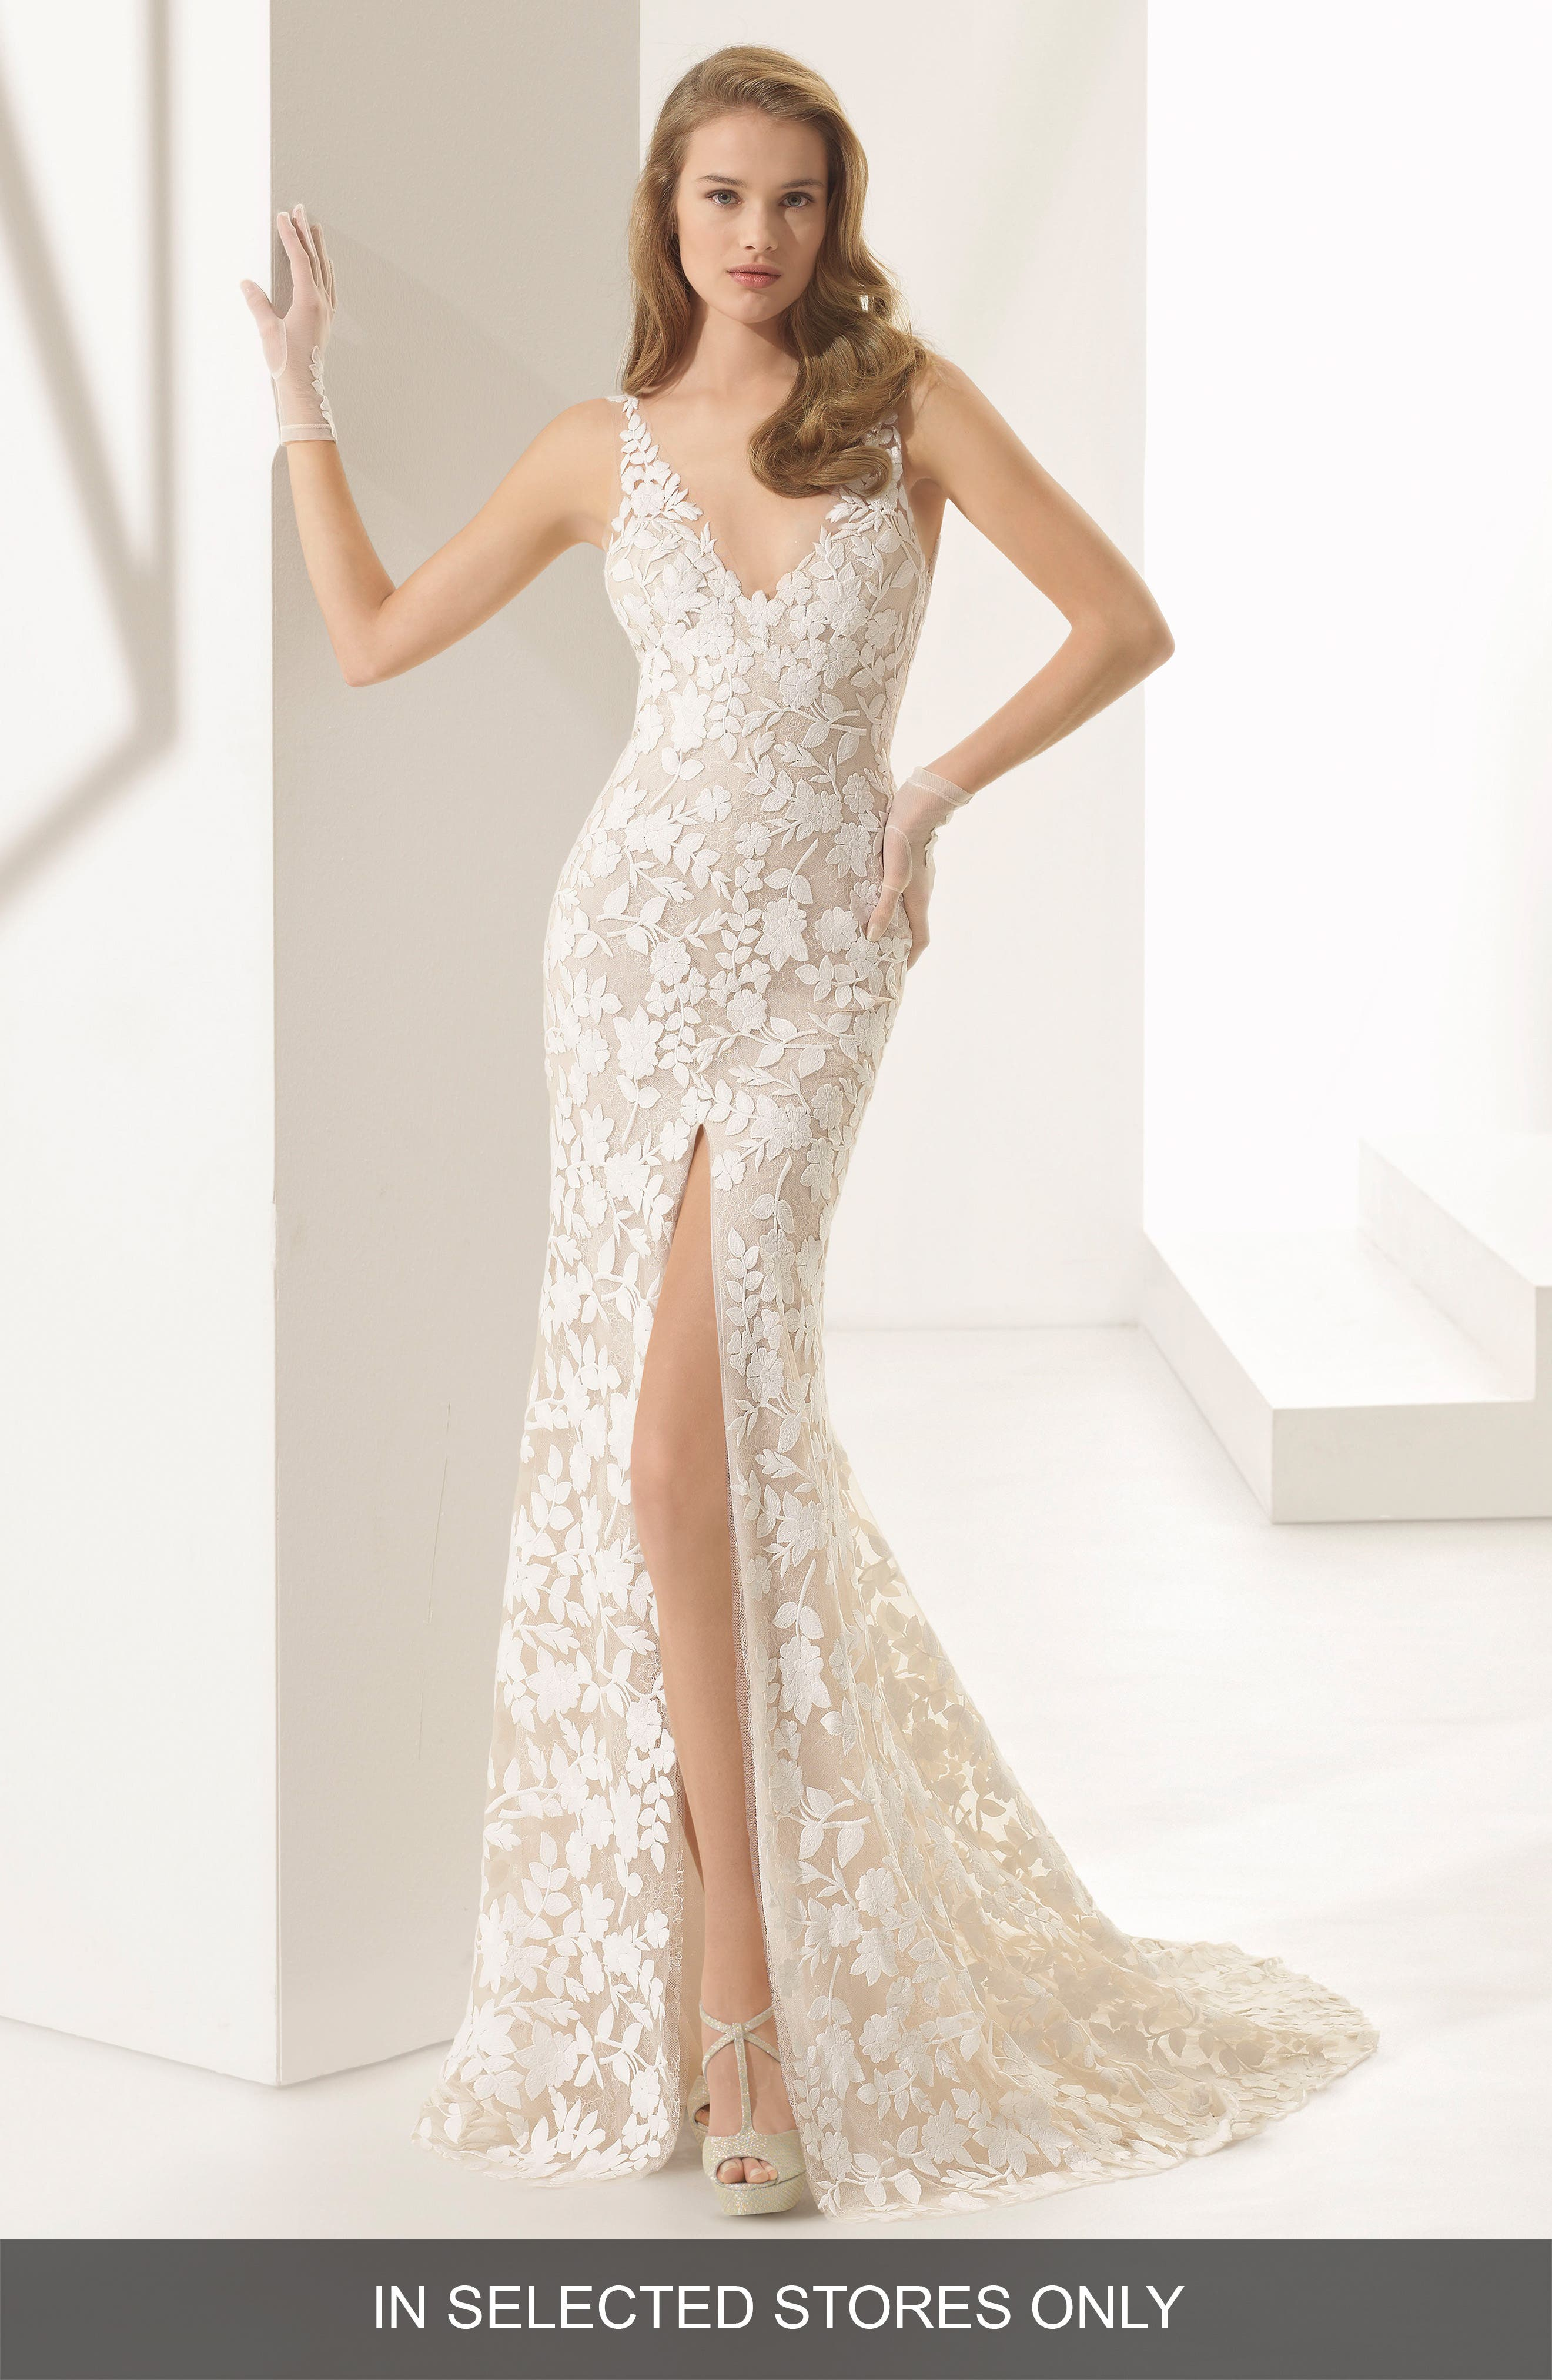 Rosa Clará Couture Panal Guipure Lace Mermaid Gown,                             Main thumbnail 1, color,                             NATURAL/ NUDE